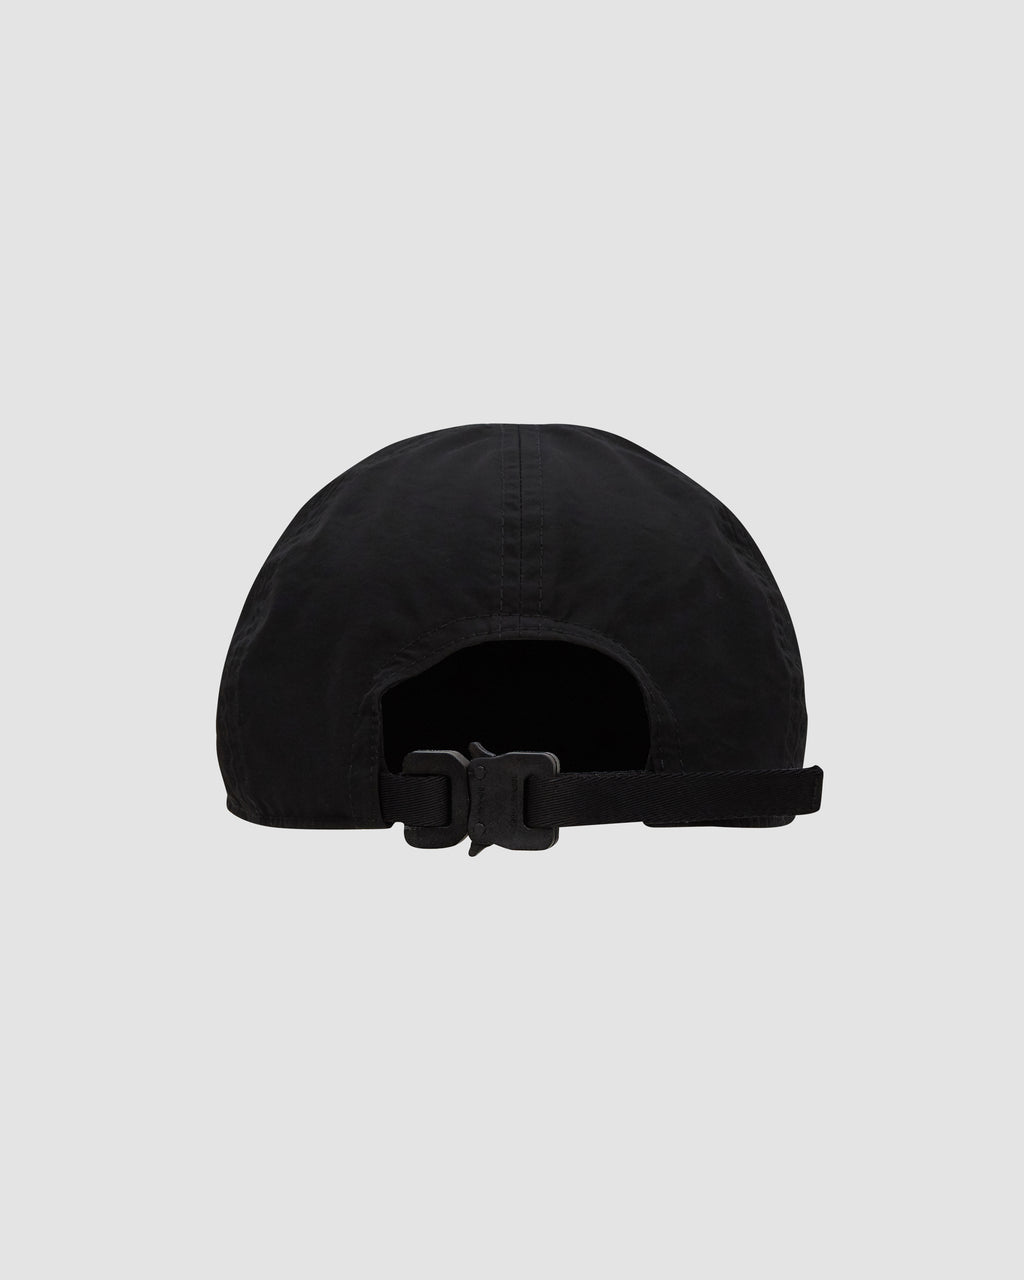 1017 ALYX 9SM | LOGO HAT W BUCKLE | Hat | Accessories, BLACK, Google Shopping, Hat, HATS, Man, S20, S20 Drop II, UNISEX, Woman